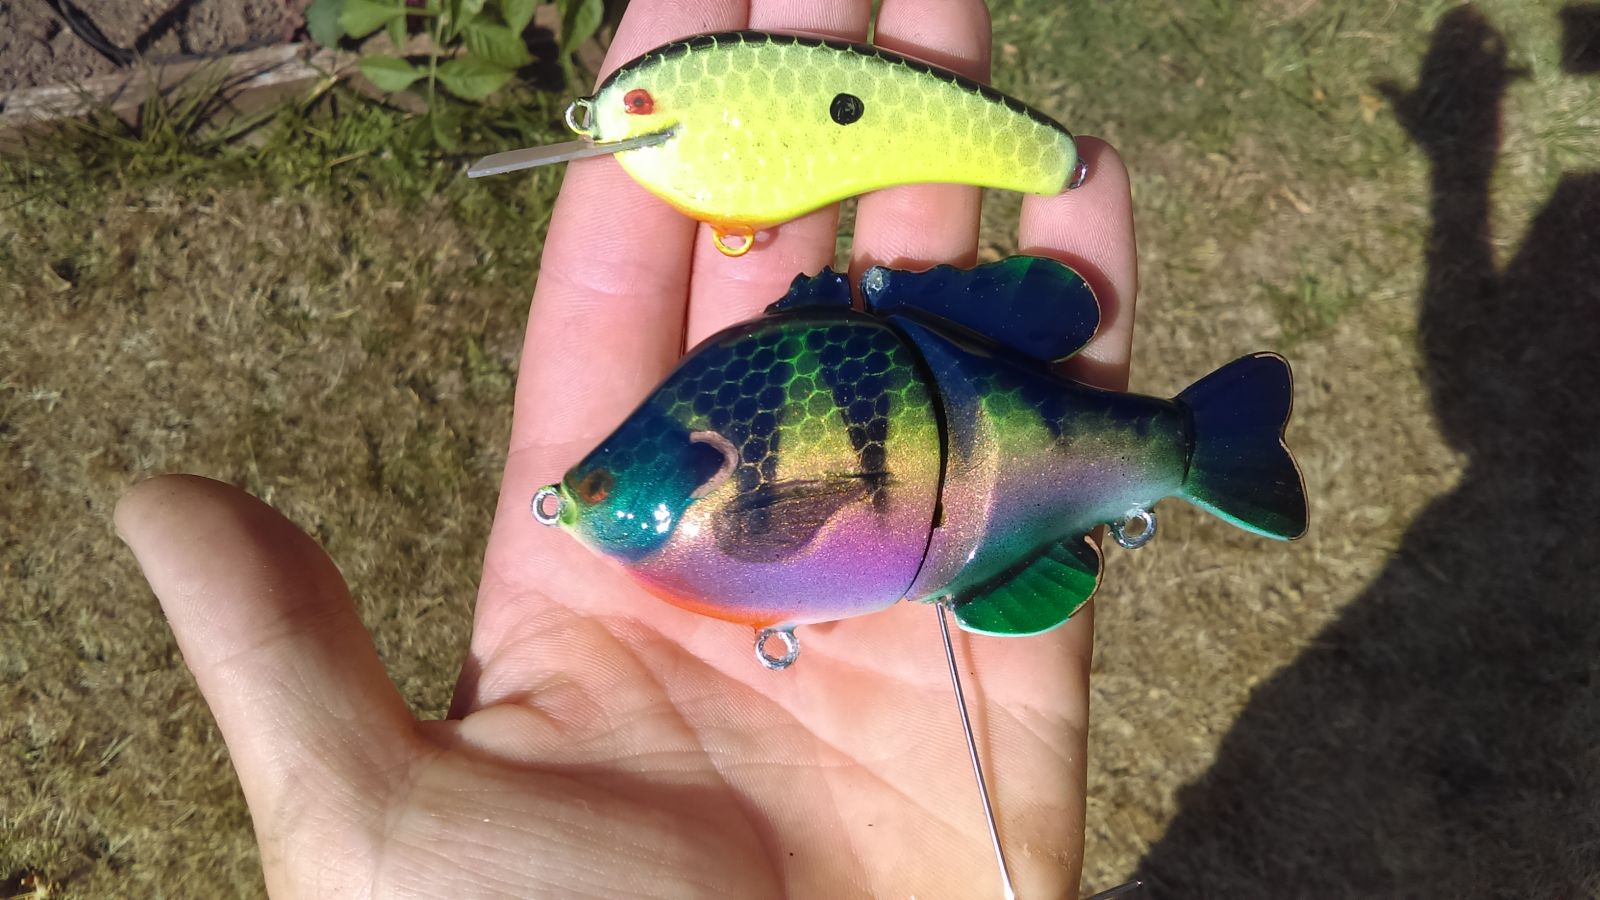 Bluegill perch